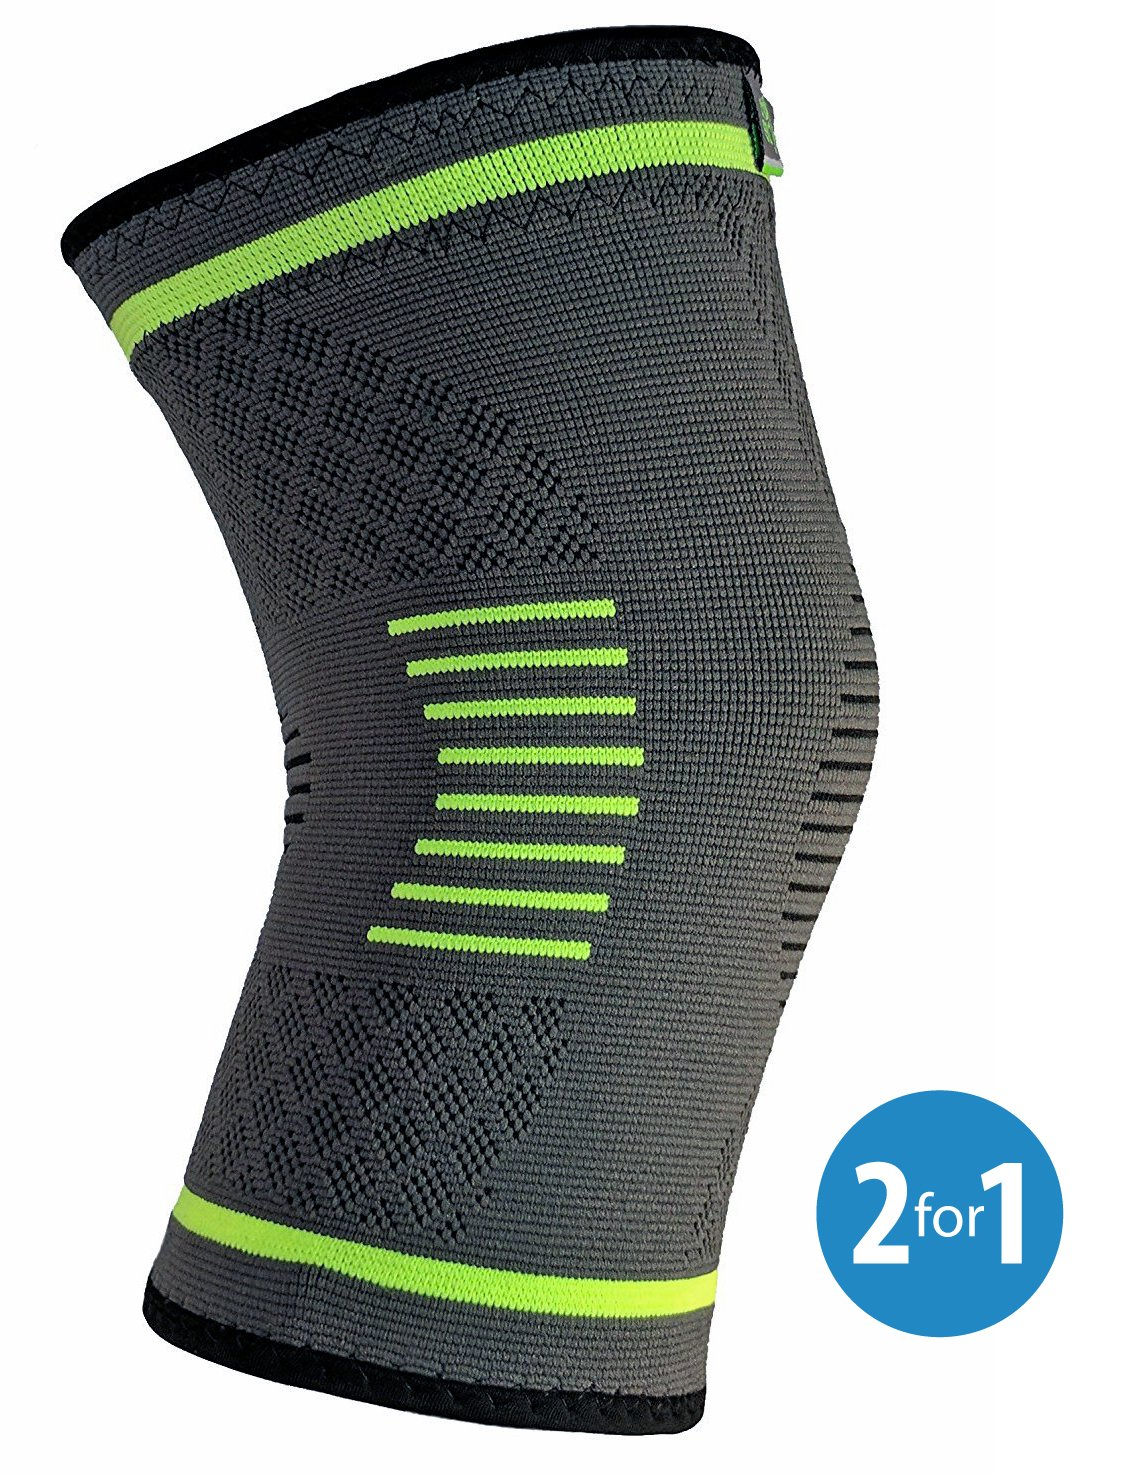 How to choose knee pads for injuries and arthrosis